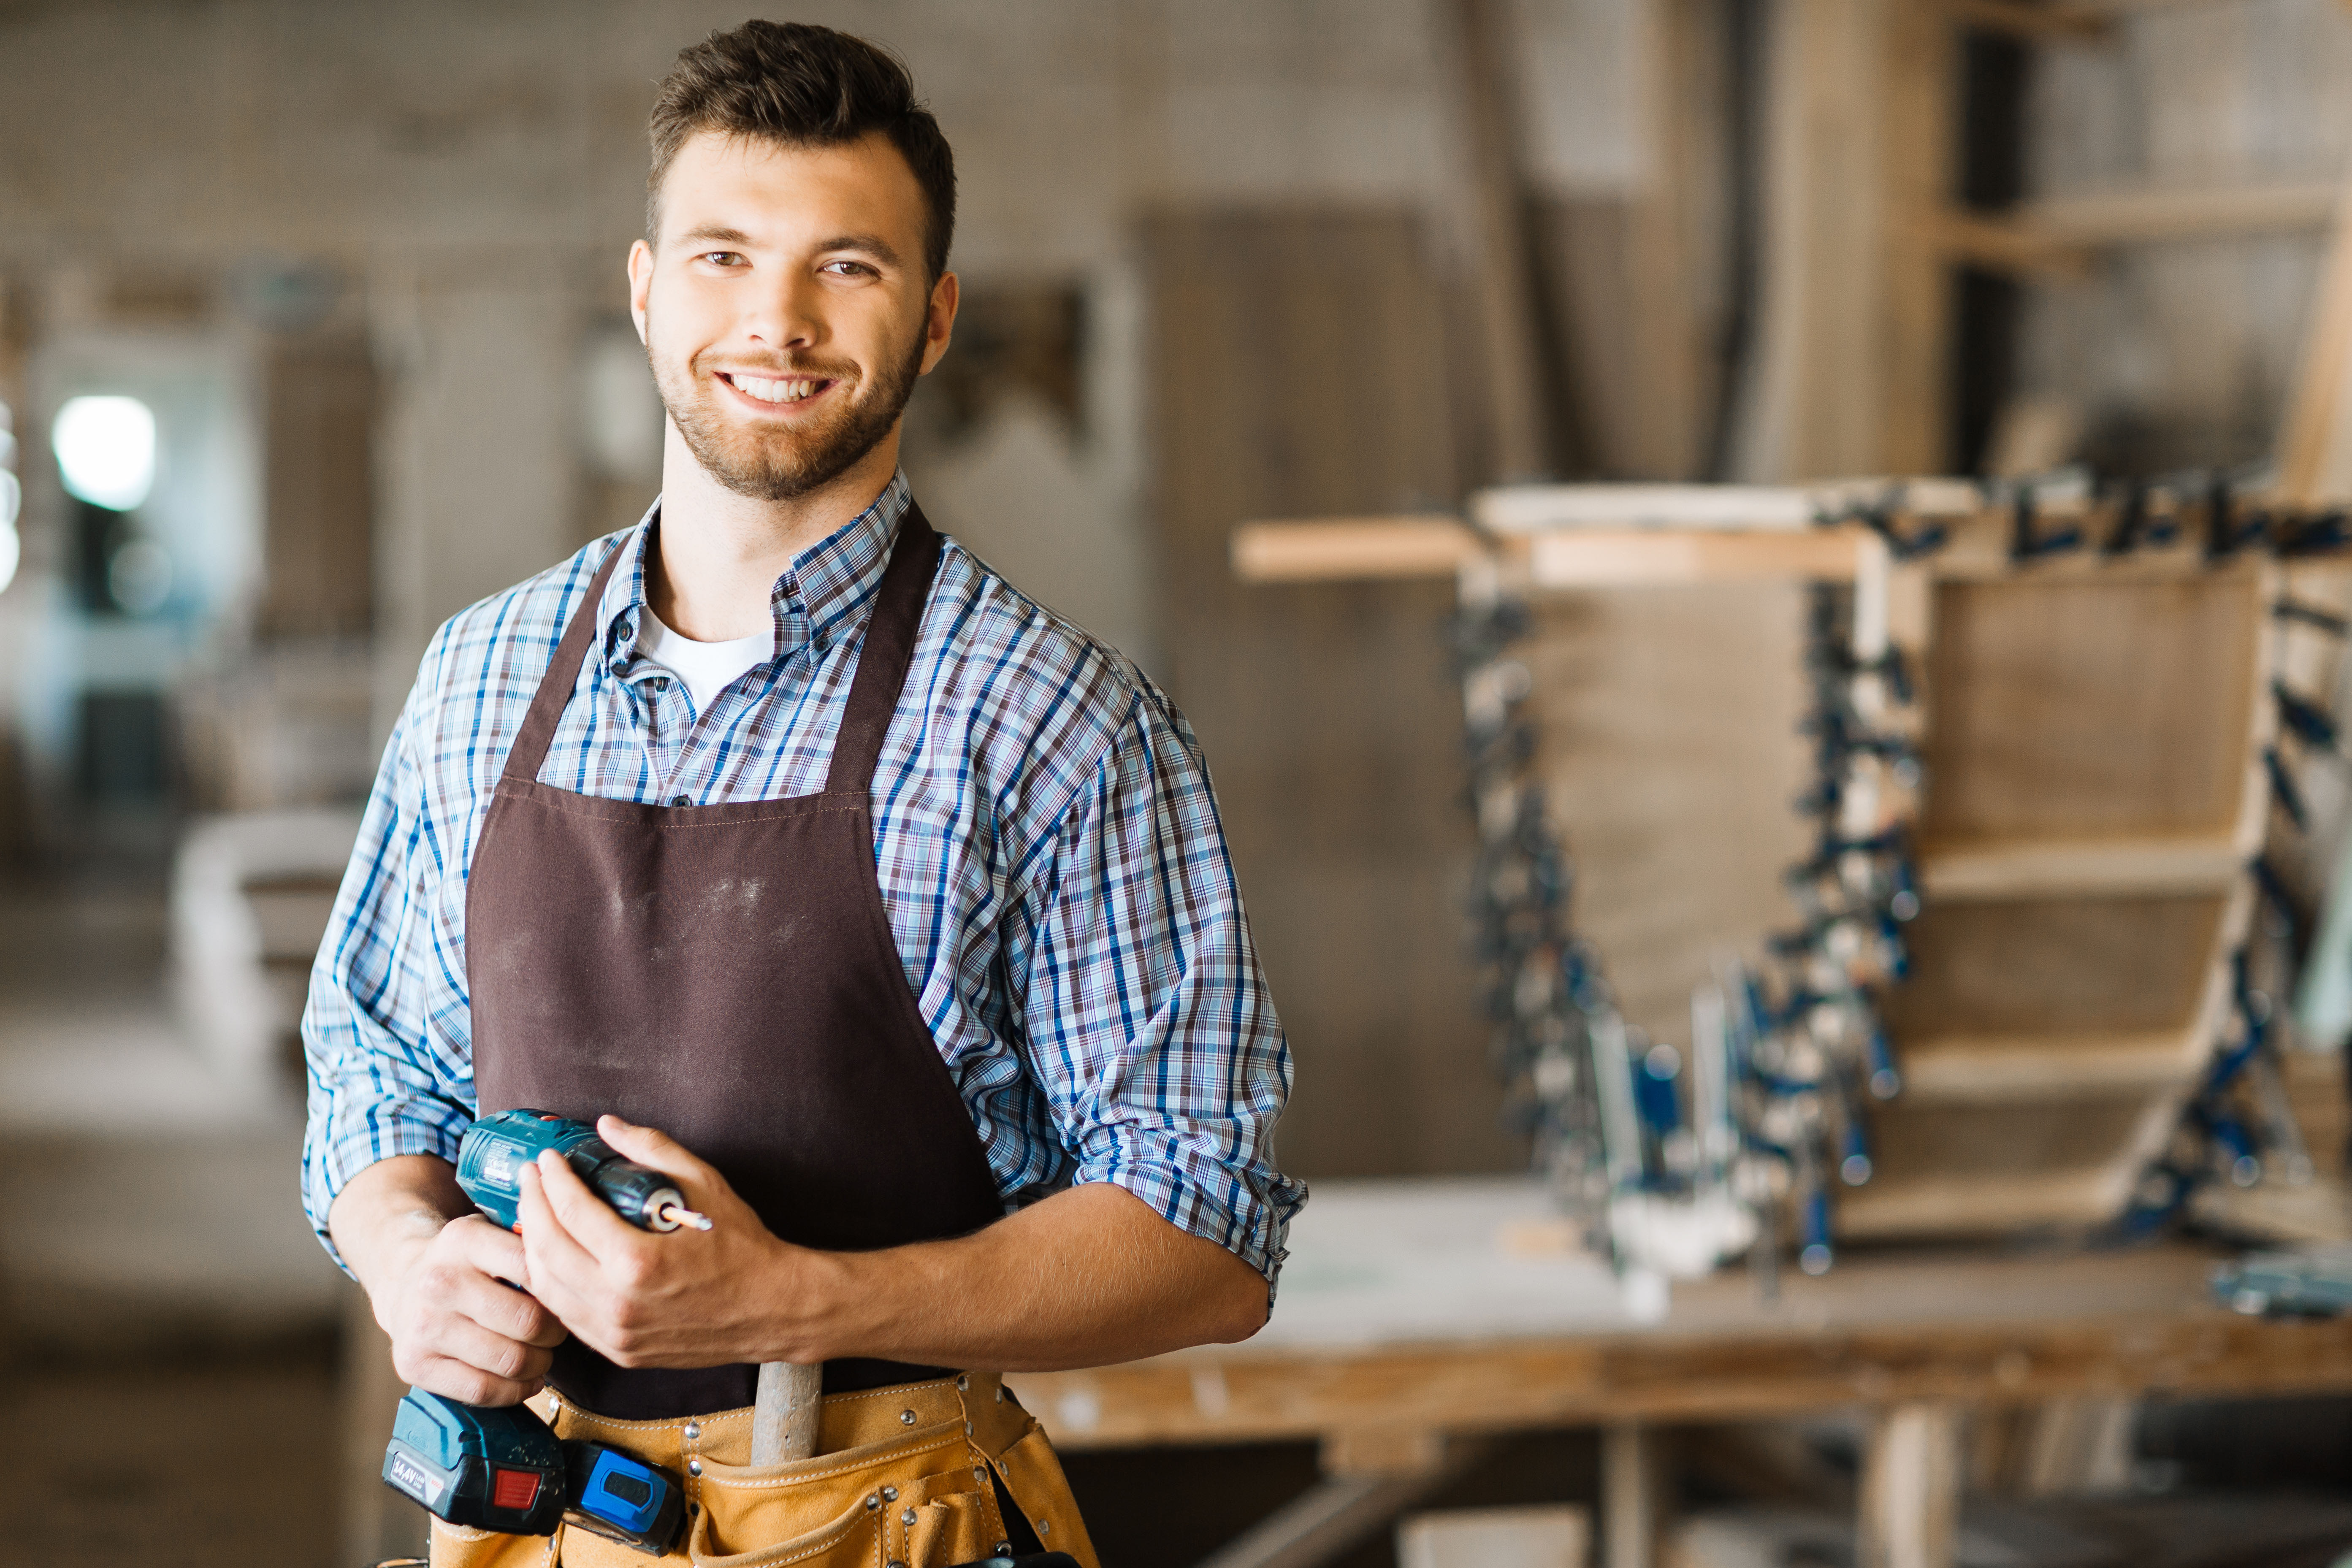 Small Business Owners Red Oak, Iowa Miller Financial Group